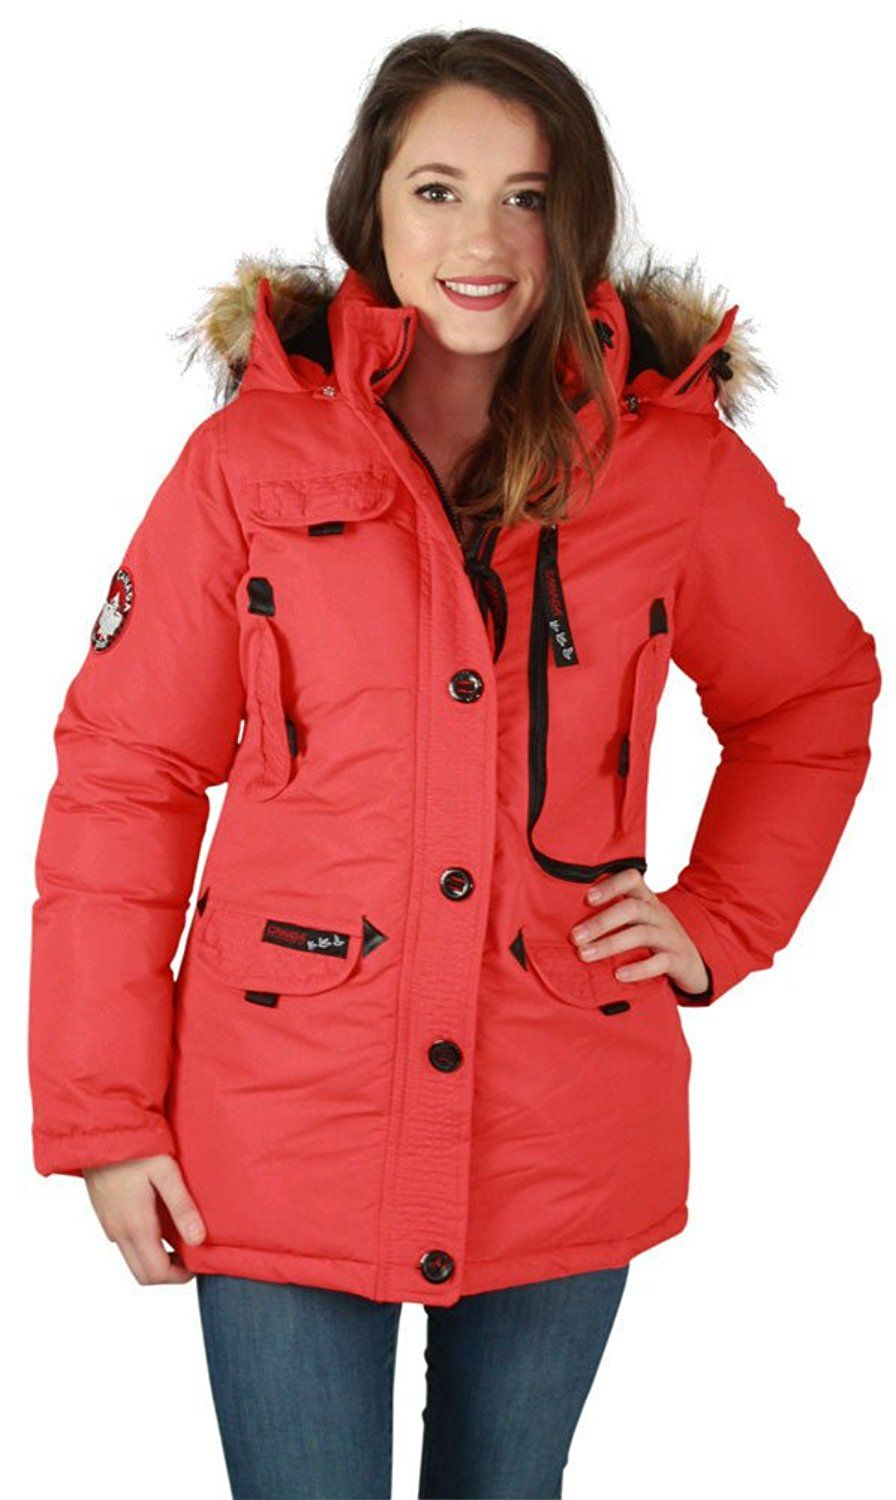 Canada Weather Gear Women S Parka Faux Down Goose Jacket Coat Details Can Be Found By Clicking On The Image Jackets Womens Parka Leather Jacket [ 1500 x 896 Pixel ]